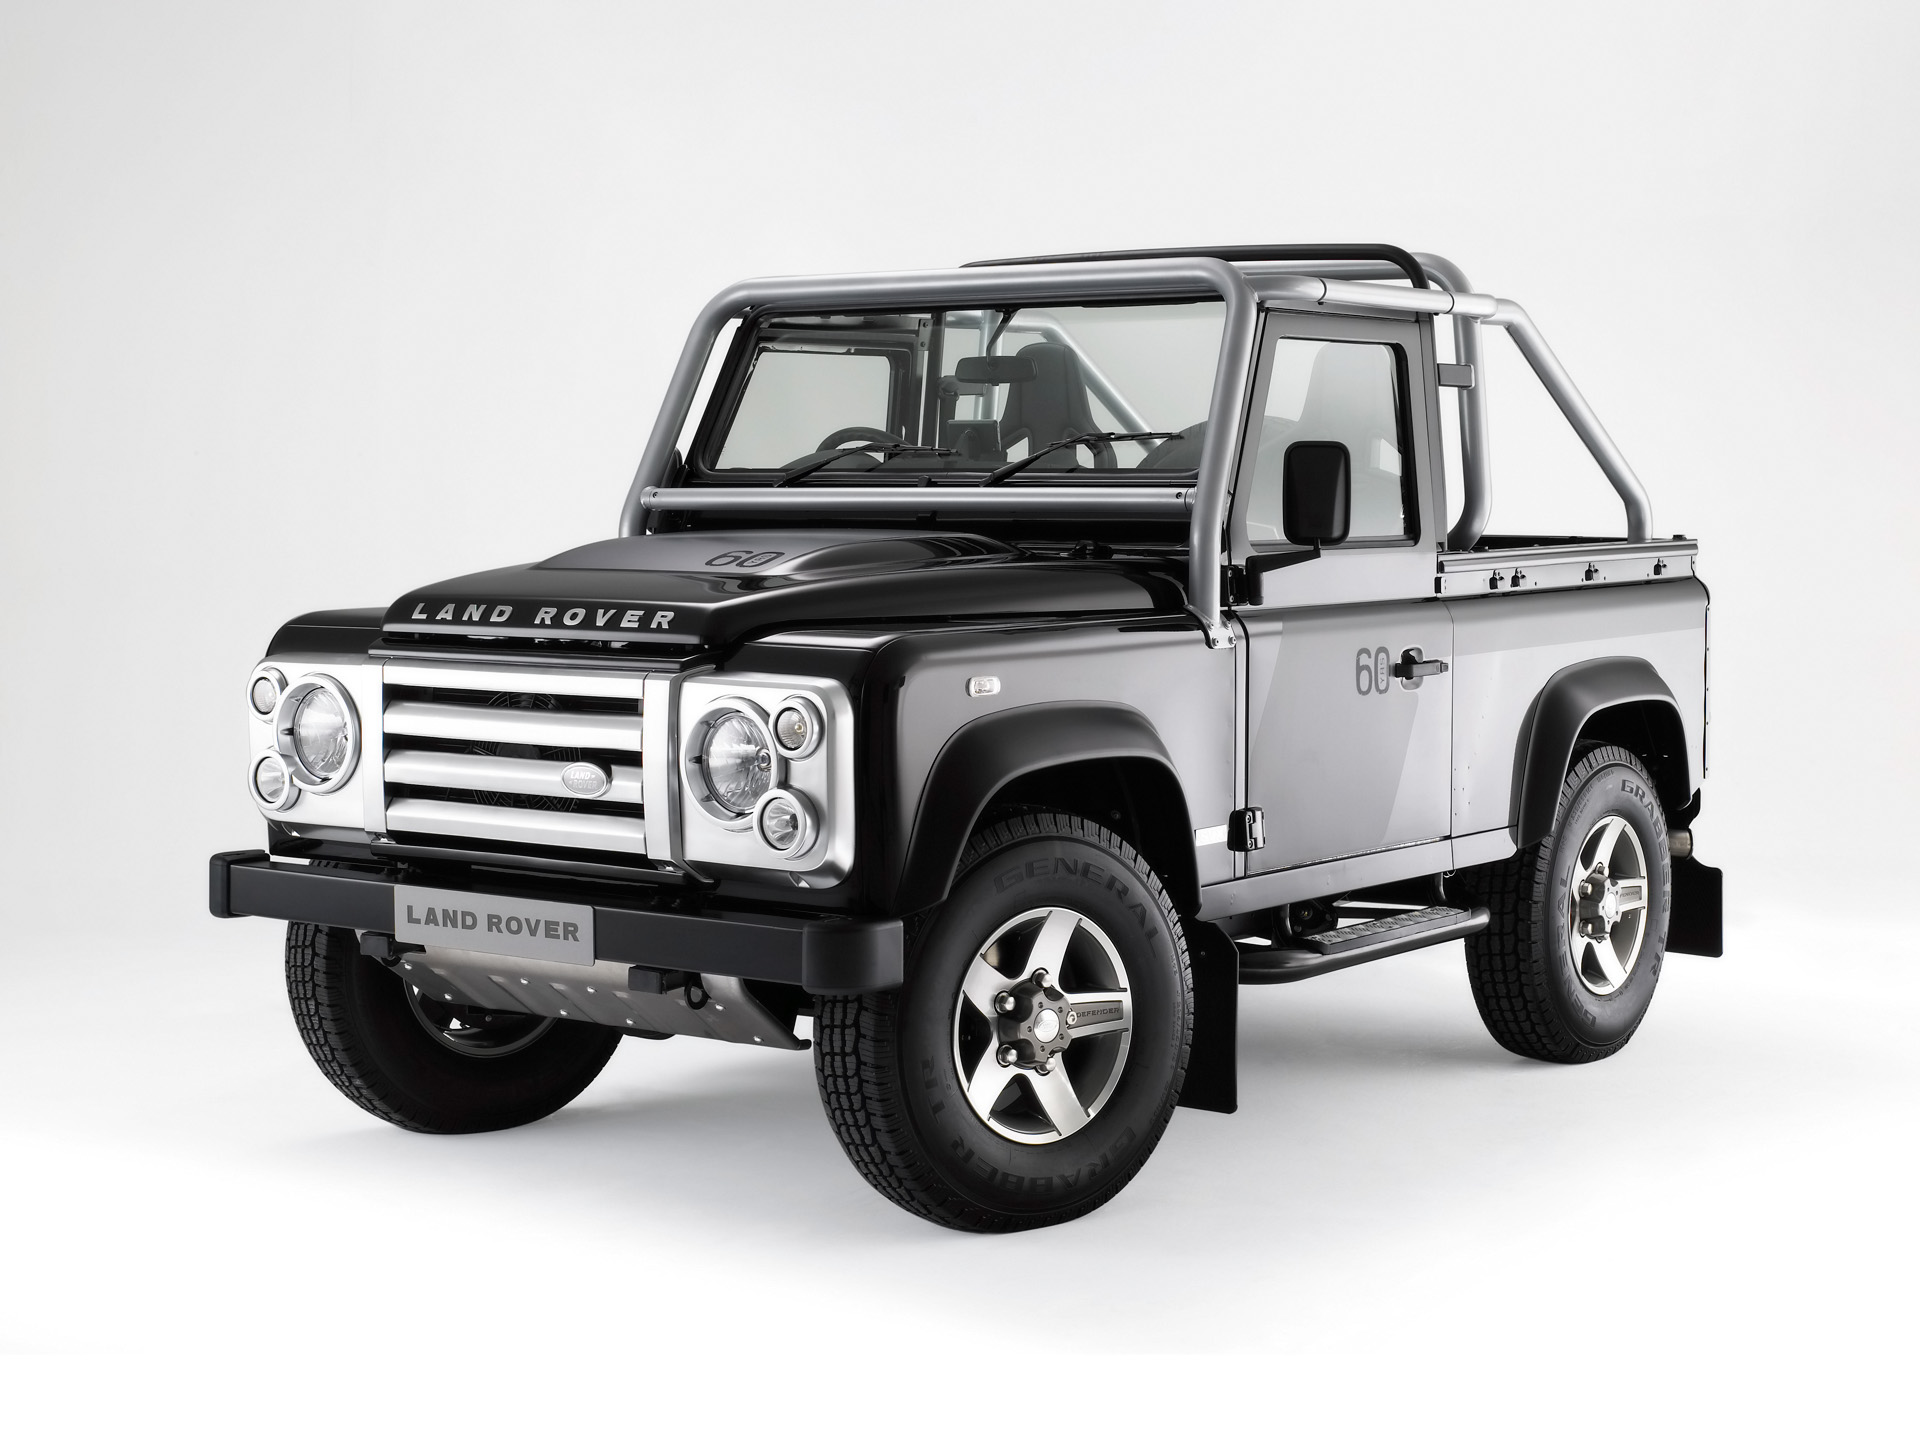 2007 Land Rover Defender 90 Svx Pictures History Value